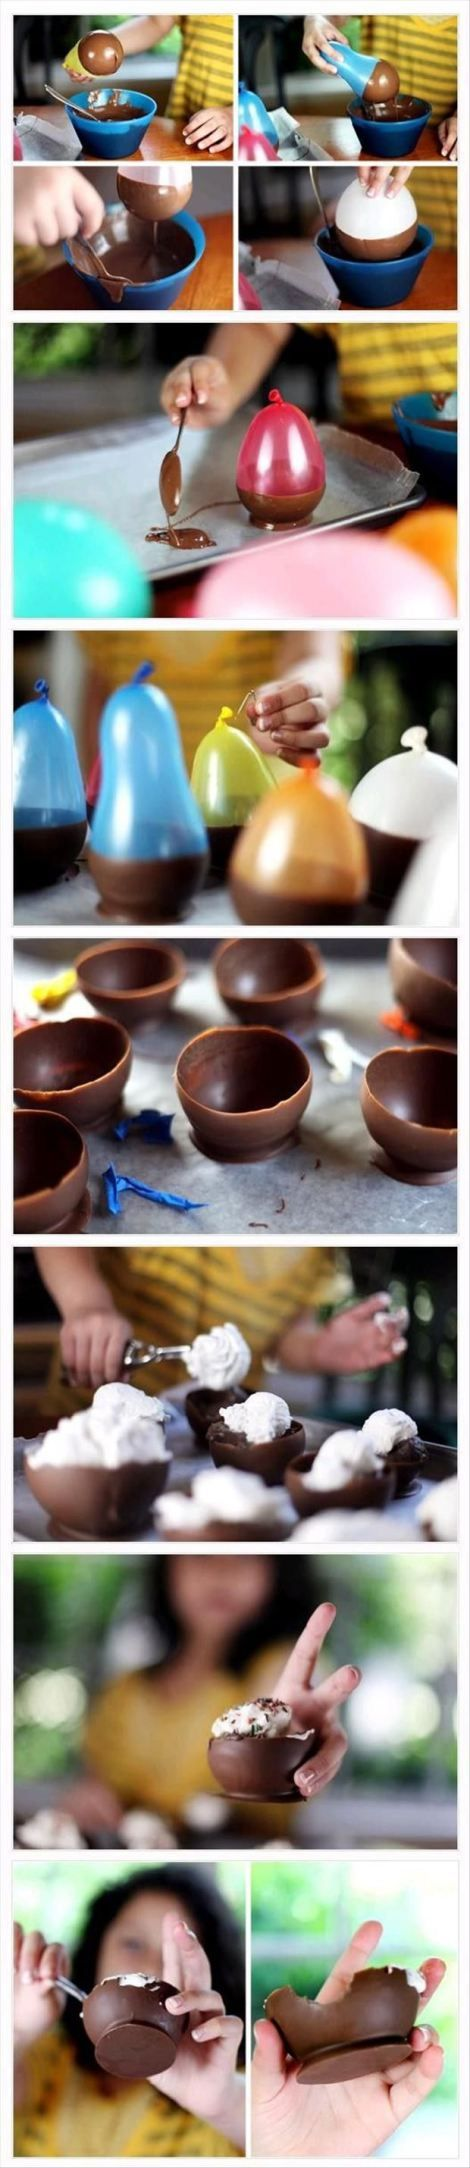 chocoloate cups